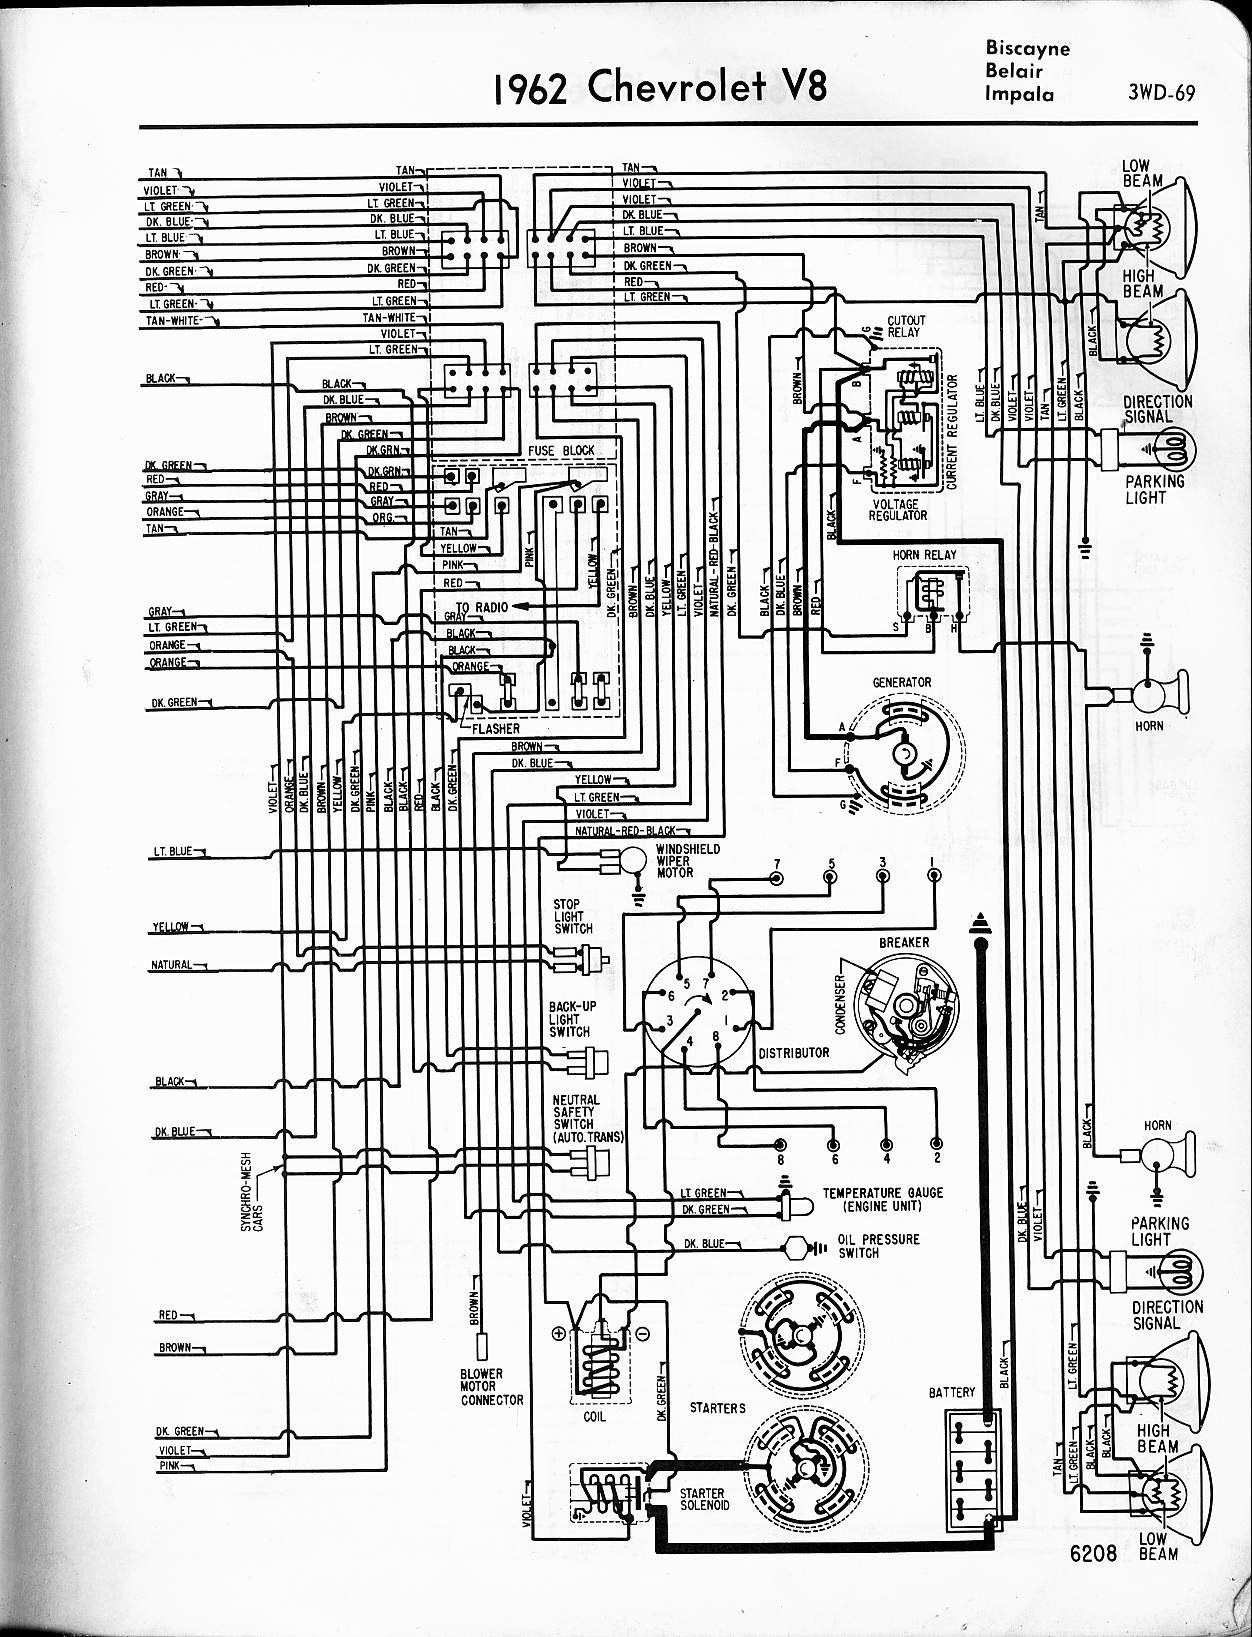 1962 Impala Wiper Motor Wiring Diagram Schematics Diagrams 1965 Heater Switch Schematic Circuit And Hub U2022 Rh Bdnewsmix Com 1959 Chevy